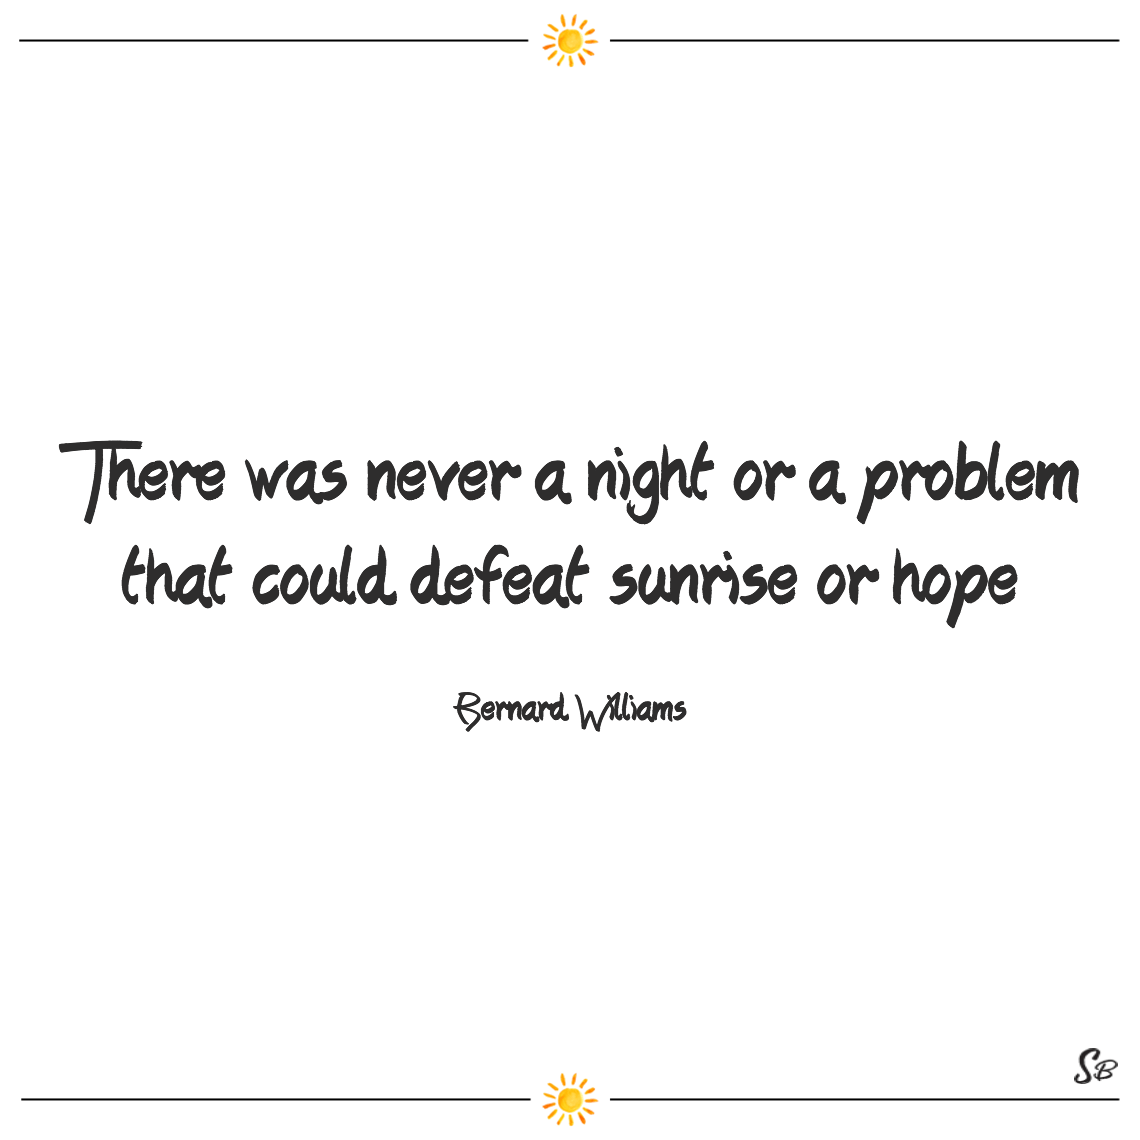 There was never a night or a problem that could defeat sunrise or hope bernard williams